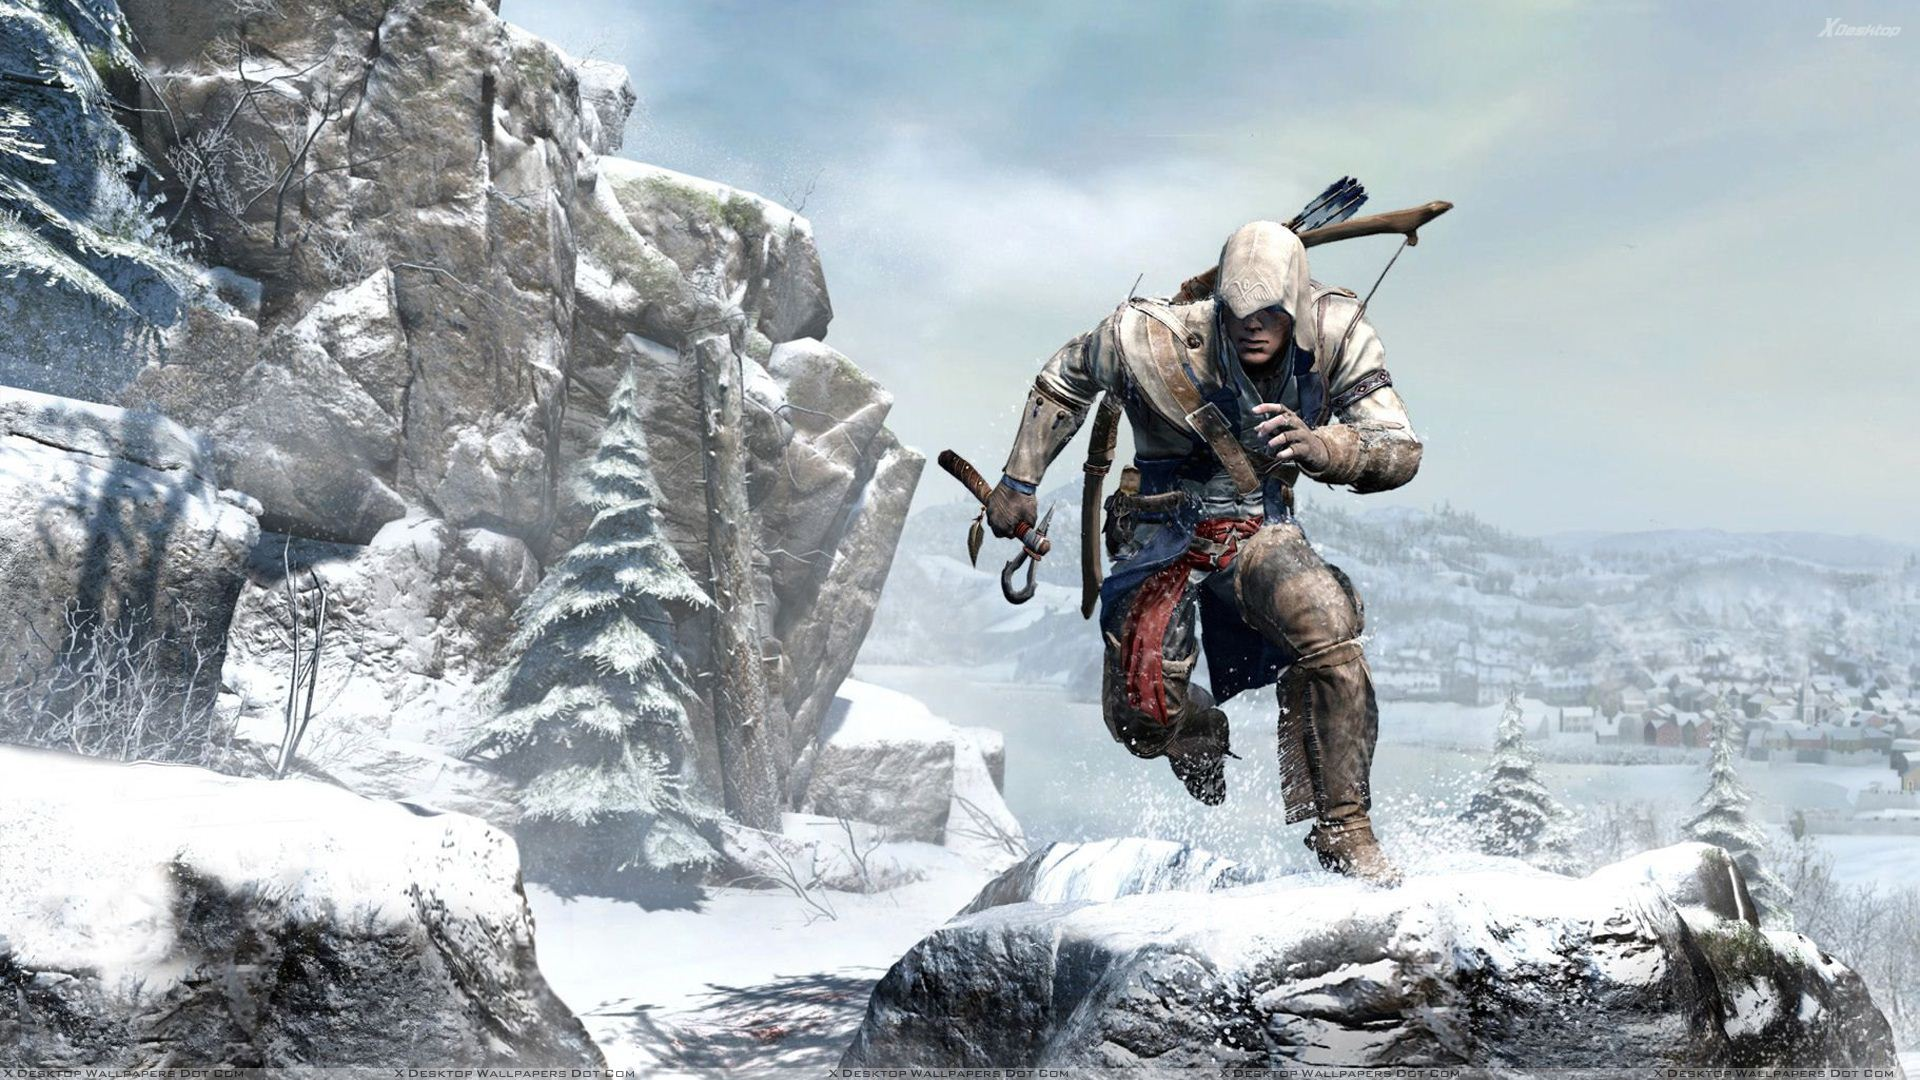 Assassins Creed 3 Running On Snowy Mountain Wallpaper